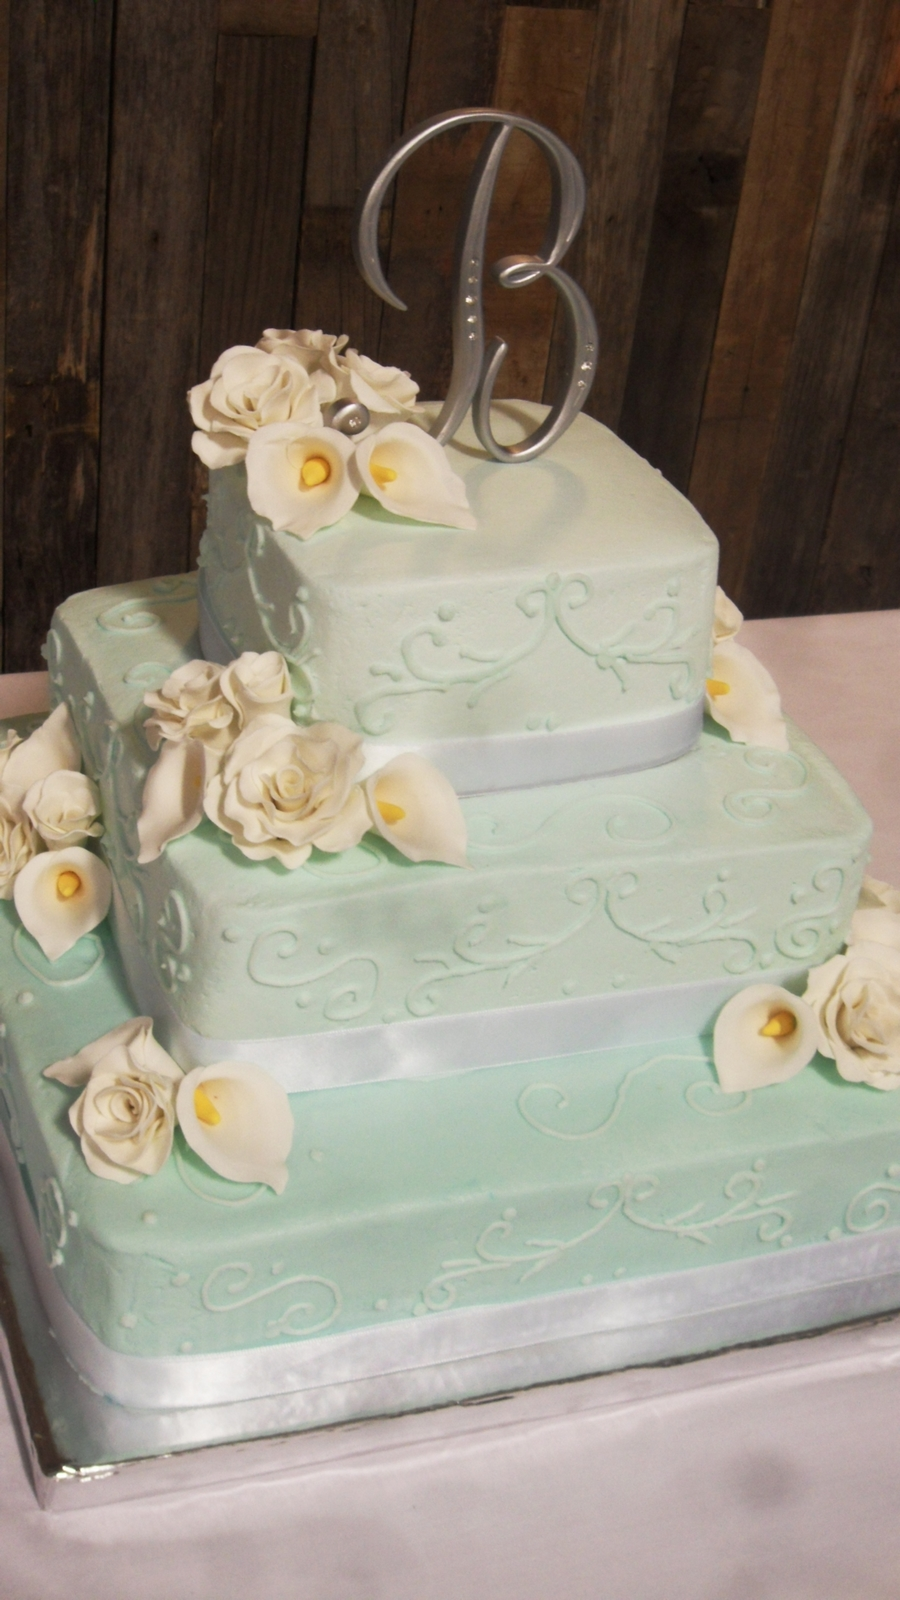 Teal Wedding Cake With Roses And Calla Lillies on Cake Central